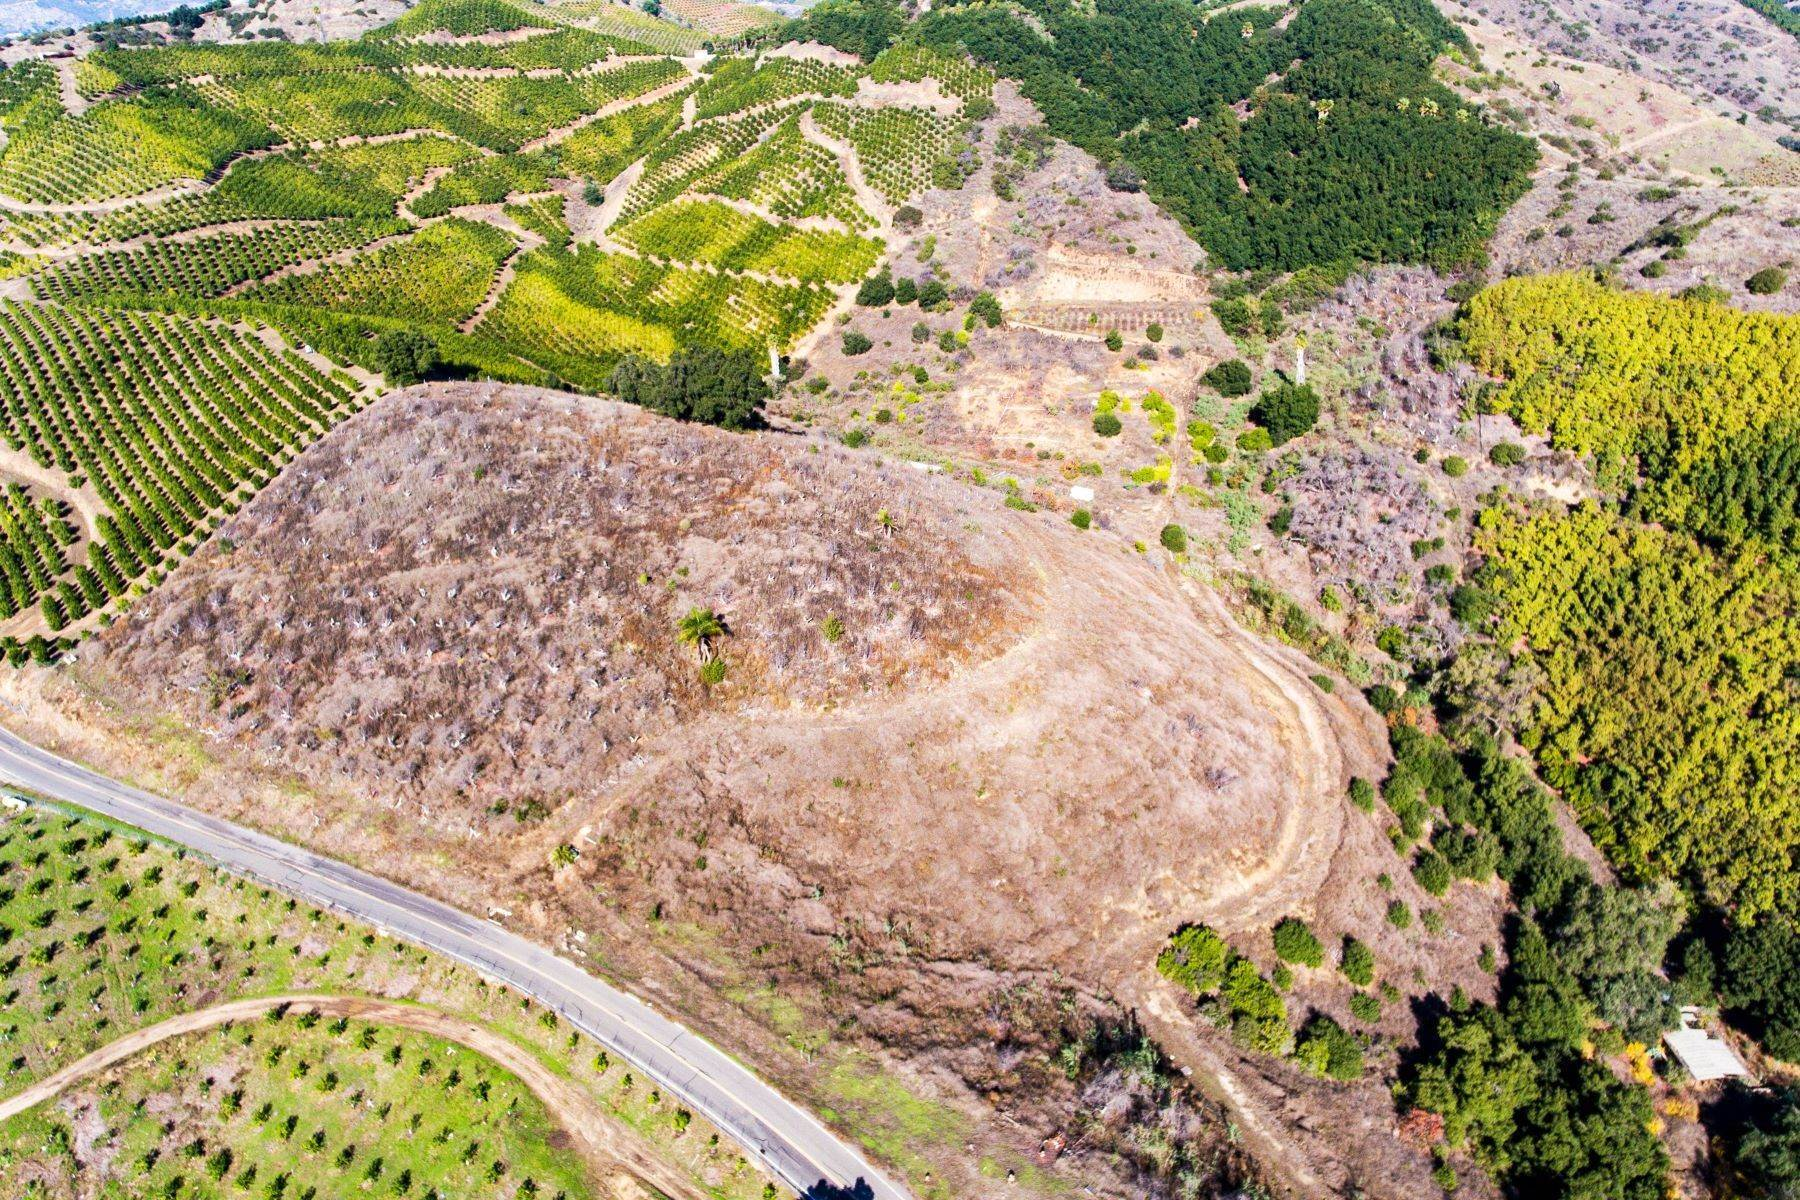 Land for Sale at 46340 Avenue Tierra, Temecula, CA 92590 46340 Avenue Tierra Temecula, California 92590 United States